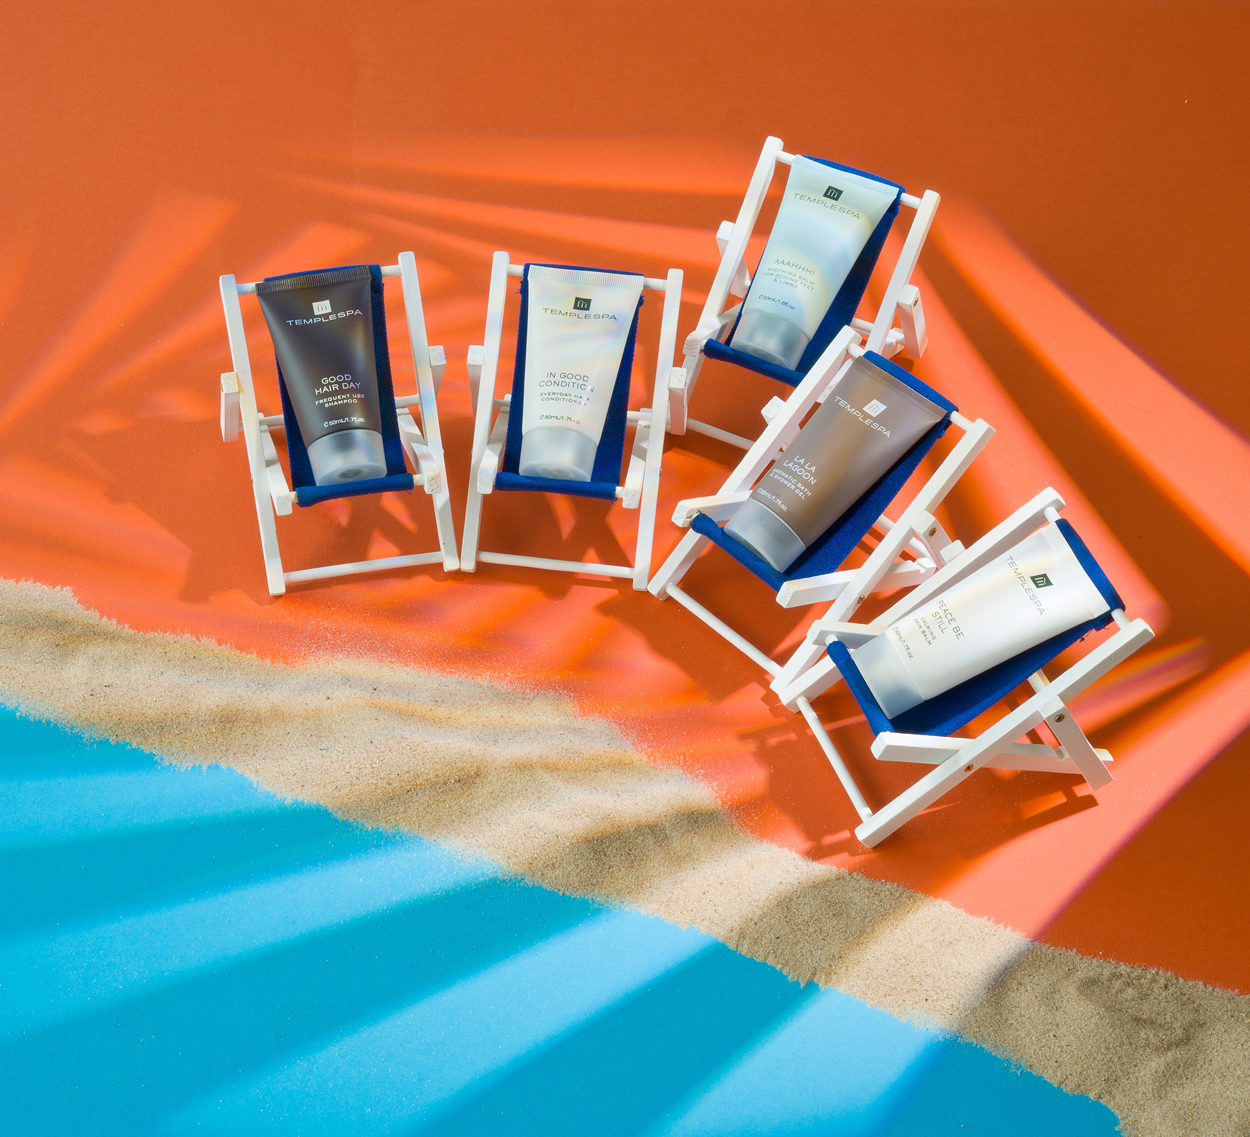 Deckchairs with products